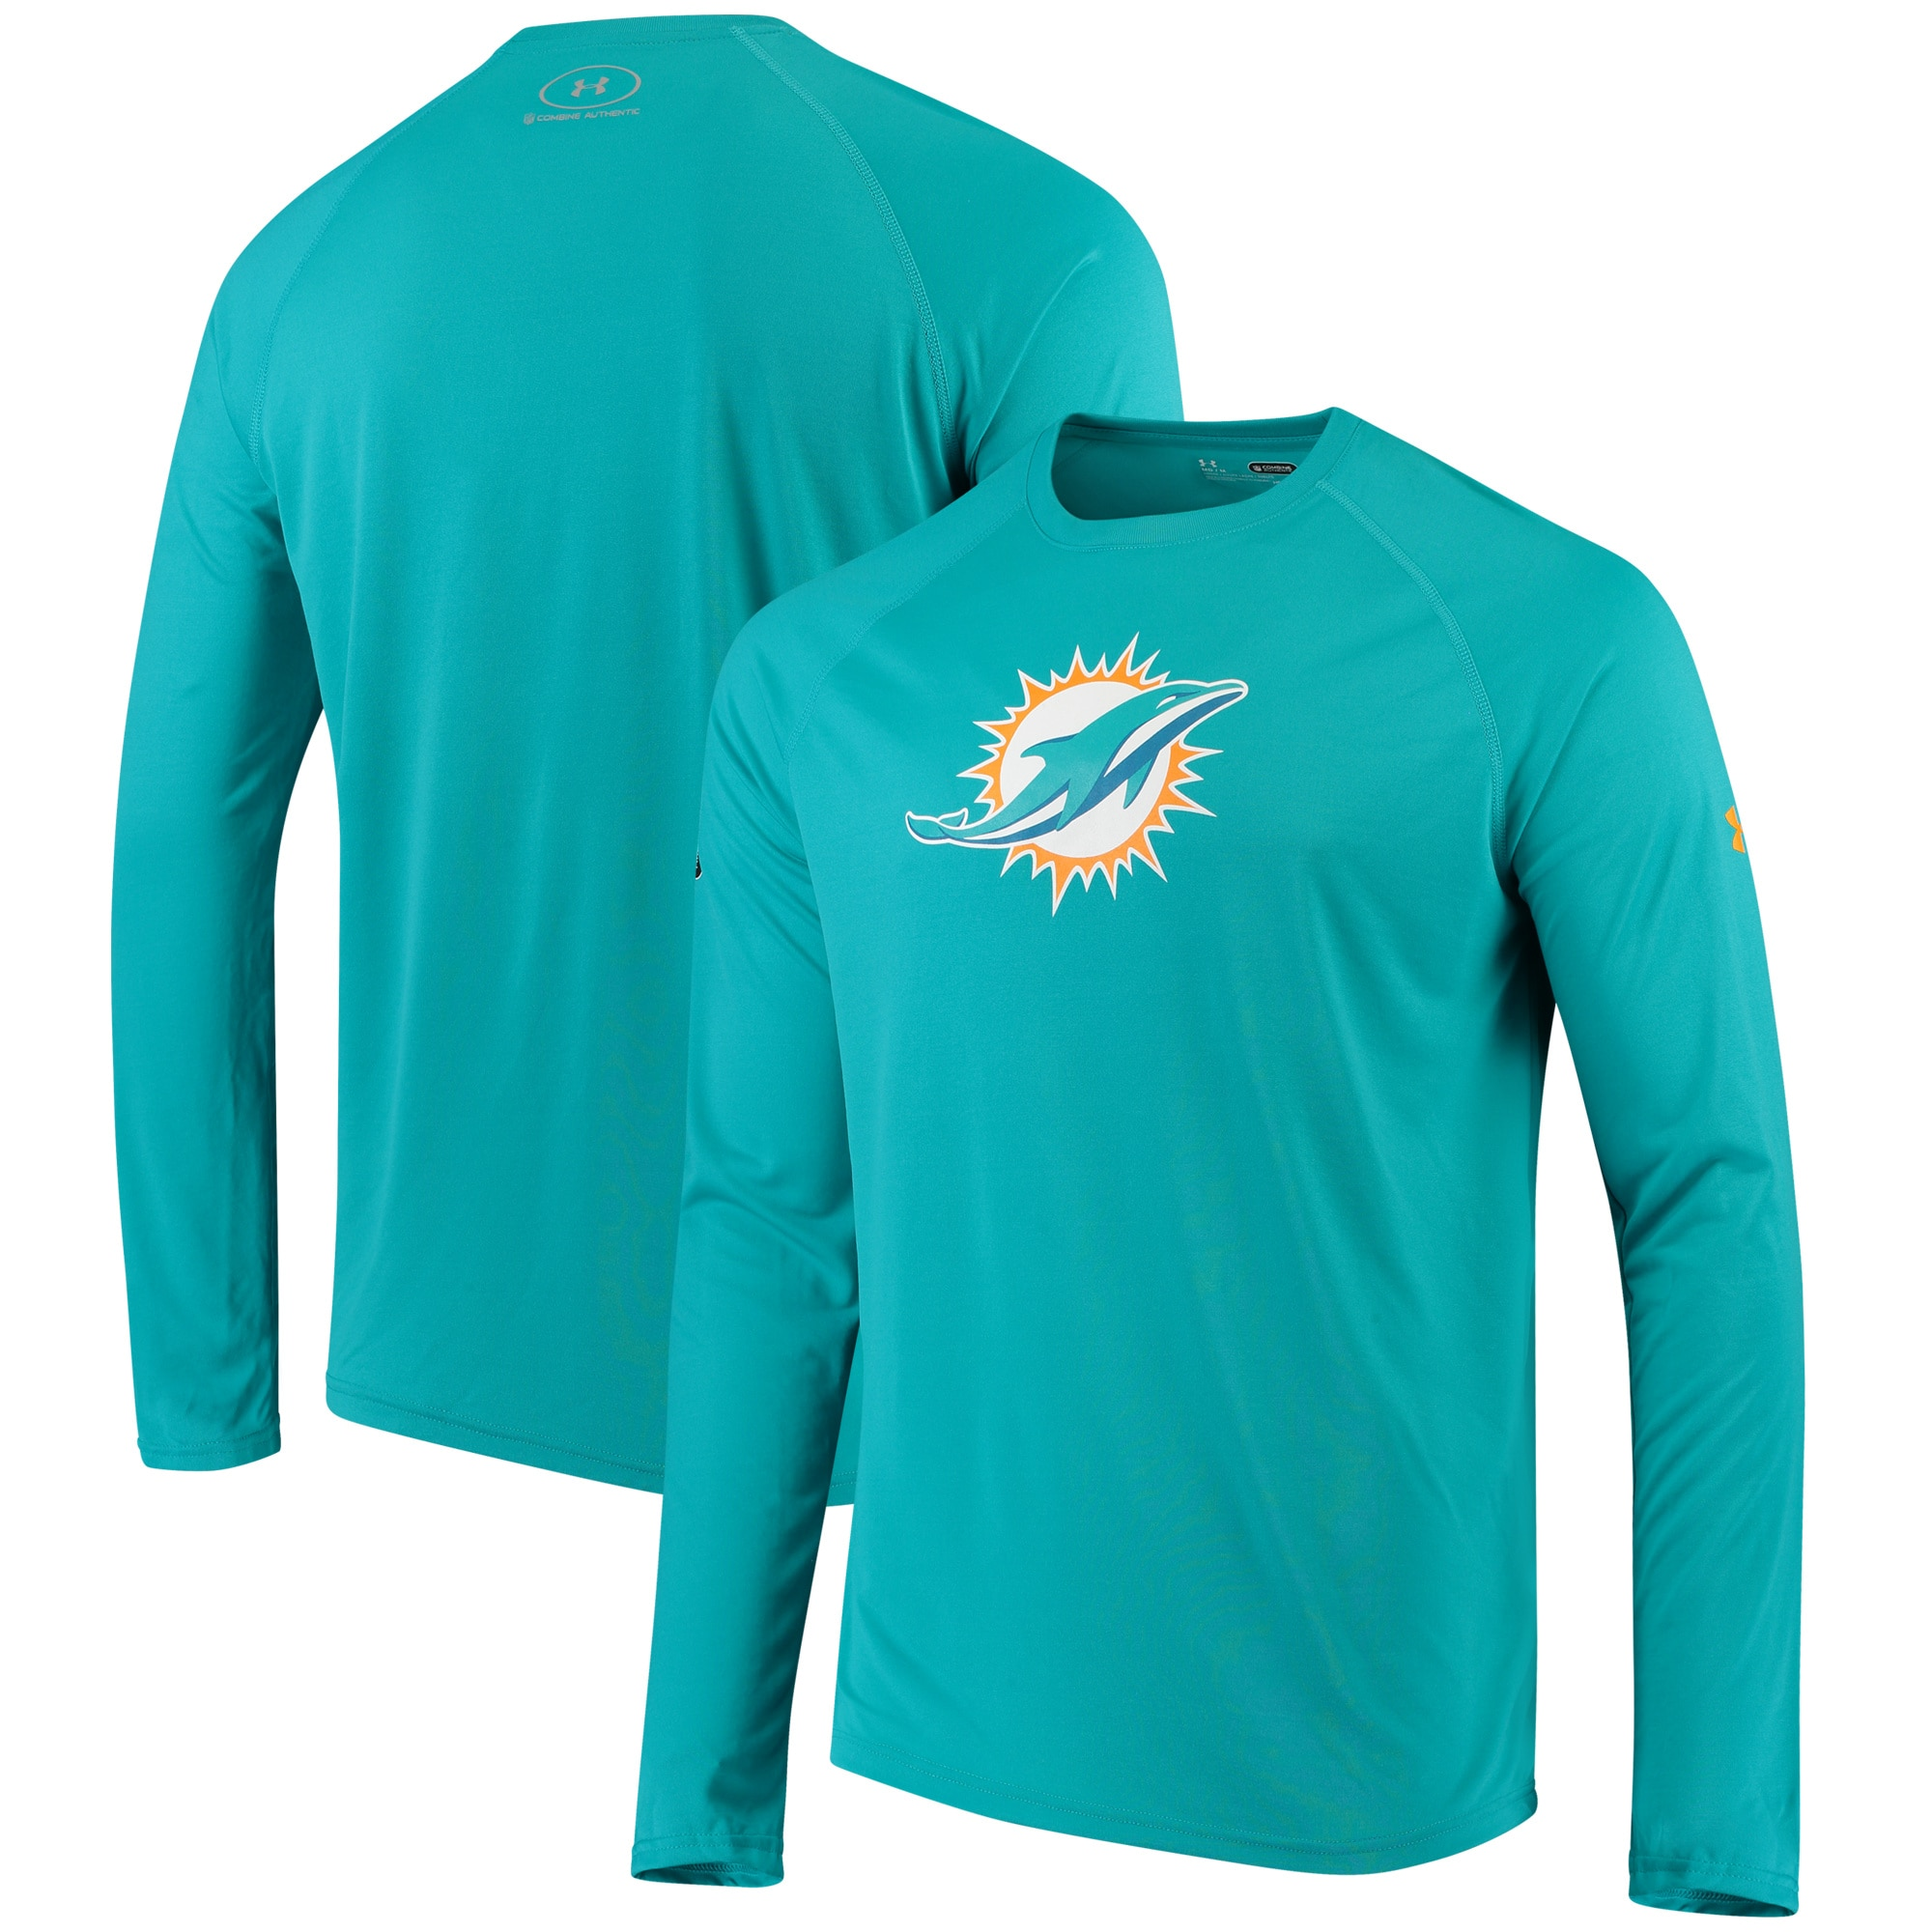 Miami Dolphins Under Armour Combine Authentic Primary Logo Tech Performance Long Sleeve T-Shirt - Aqua